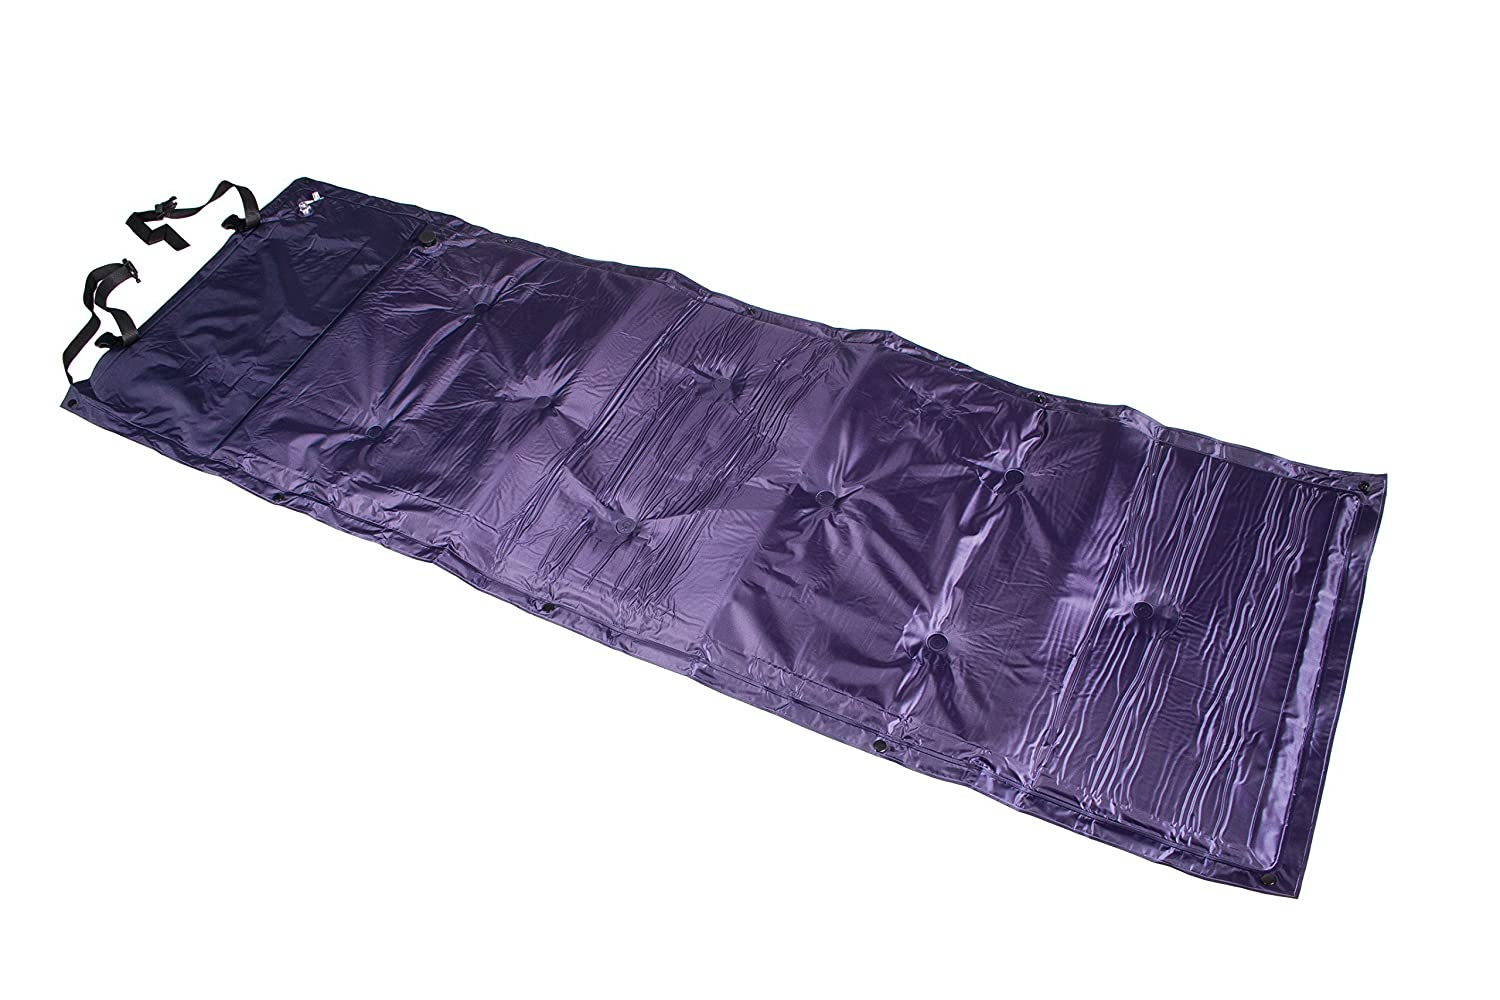 Amazon.com: Peak Performance autohinchable Sleeping Pad ...